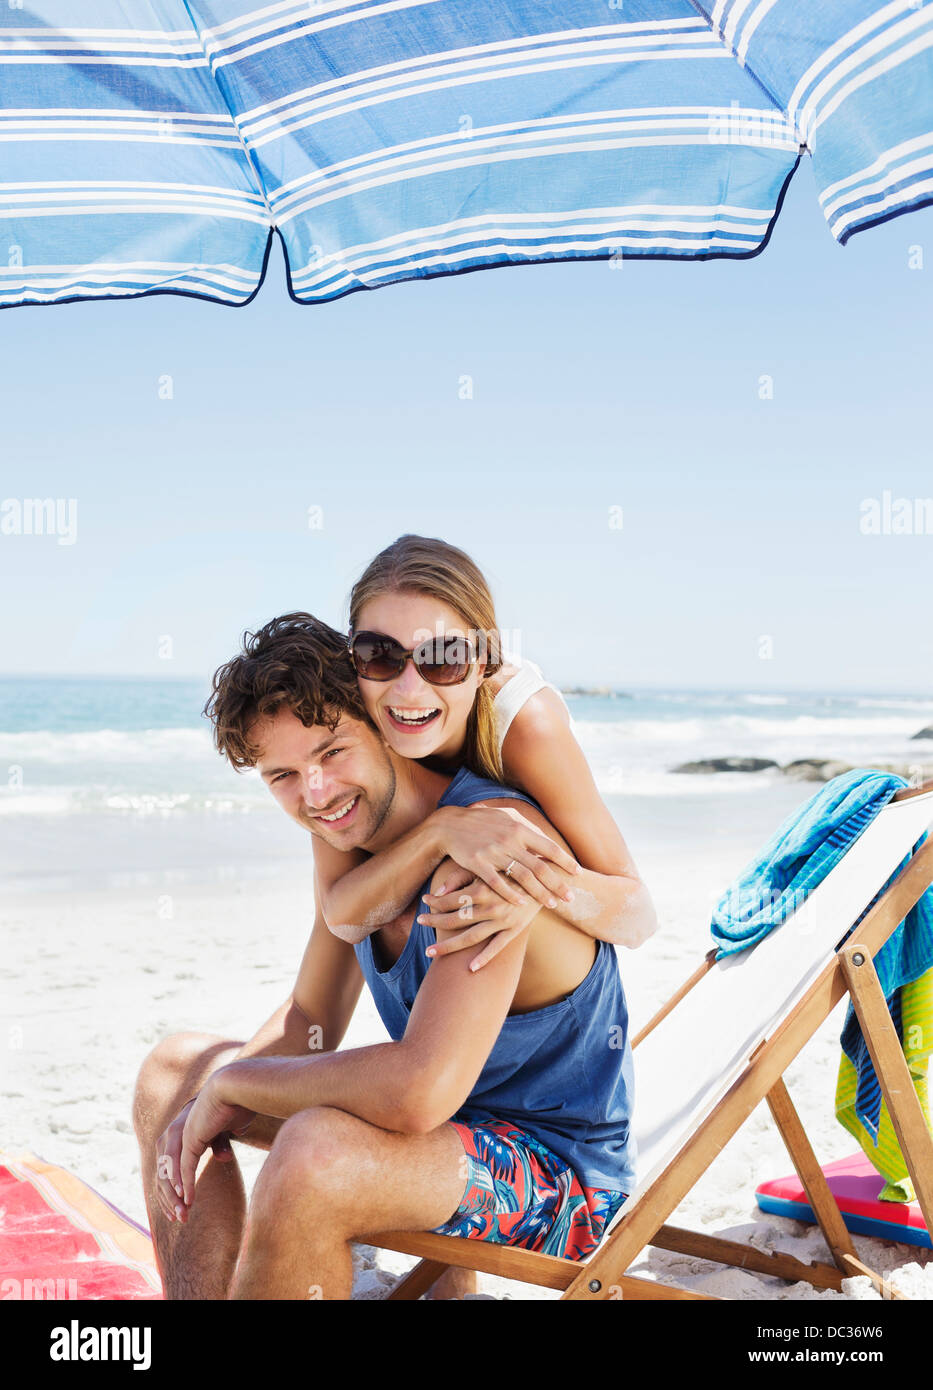 Portrait of happy couple hugging at beach - Stock Image